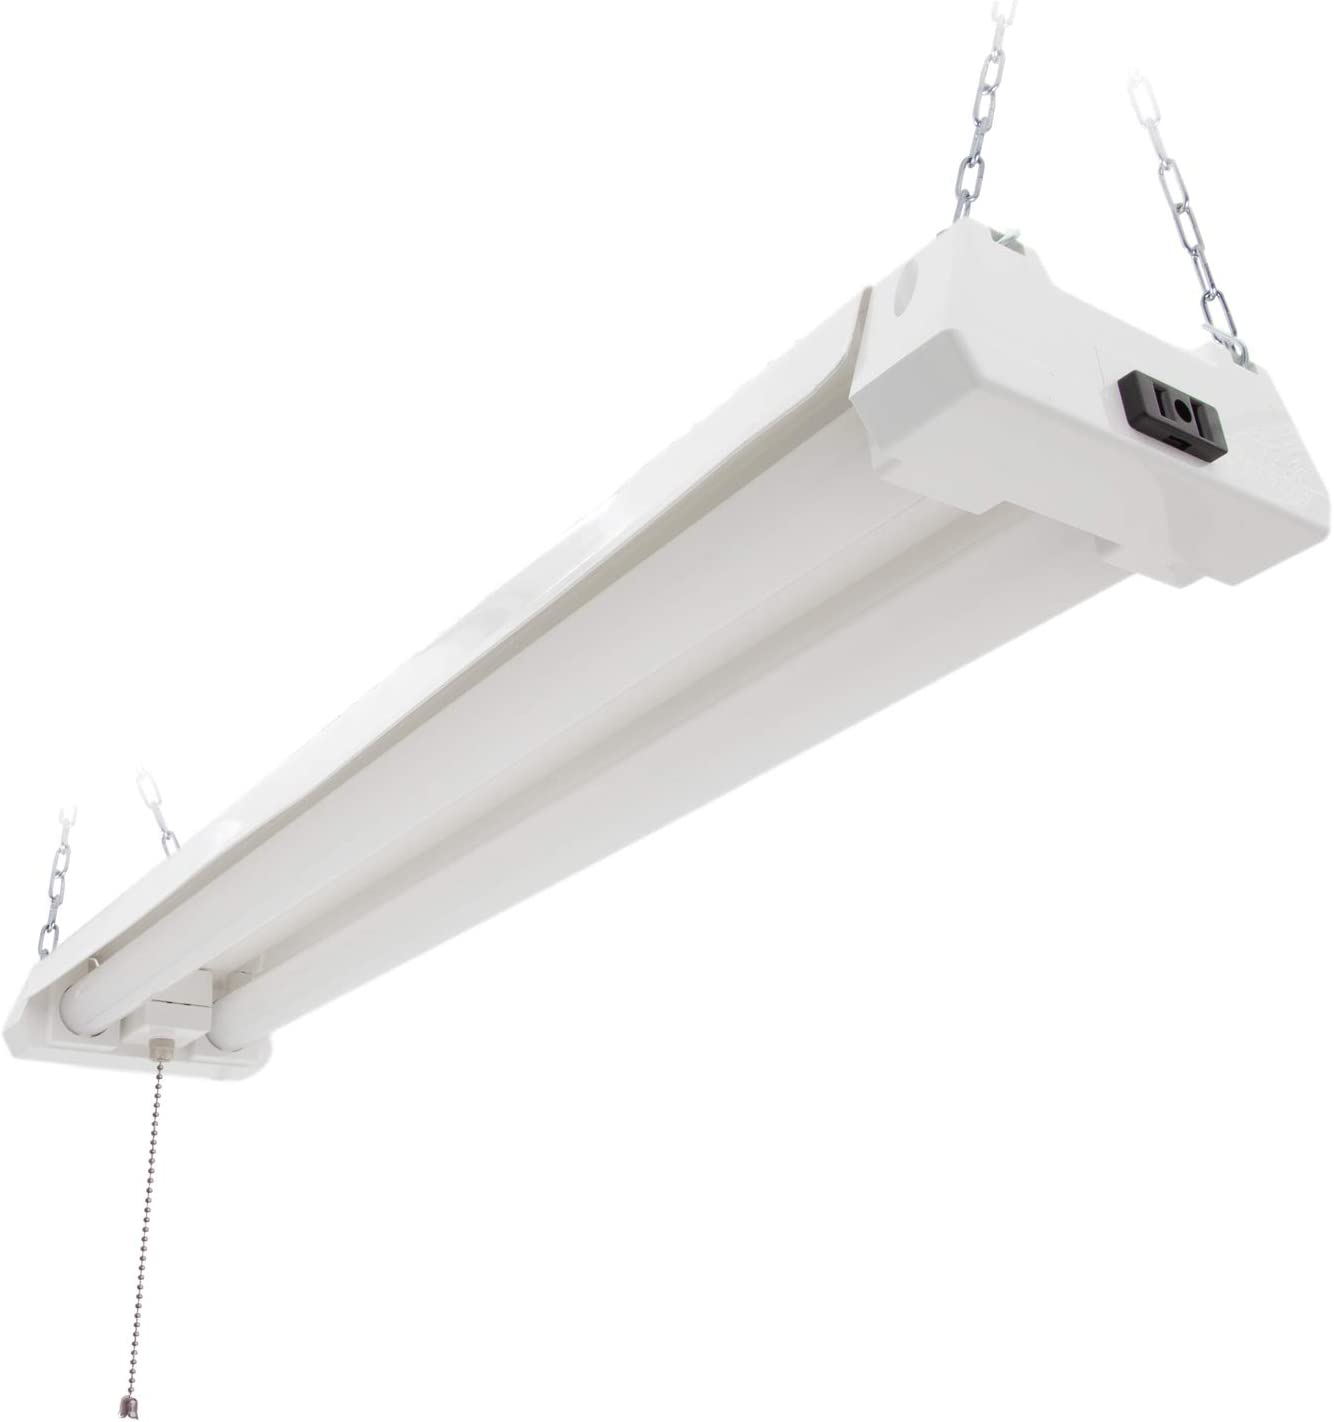 Maxxima 2 ft Hardware Included Linkable Plug in LED Garage Light Frosted Lens 5000K Daylight 2000 Lumens 20 Watt Utility LED Shop Light Fixture Pull Chain